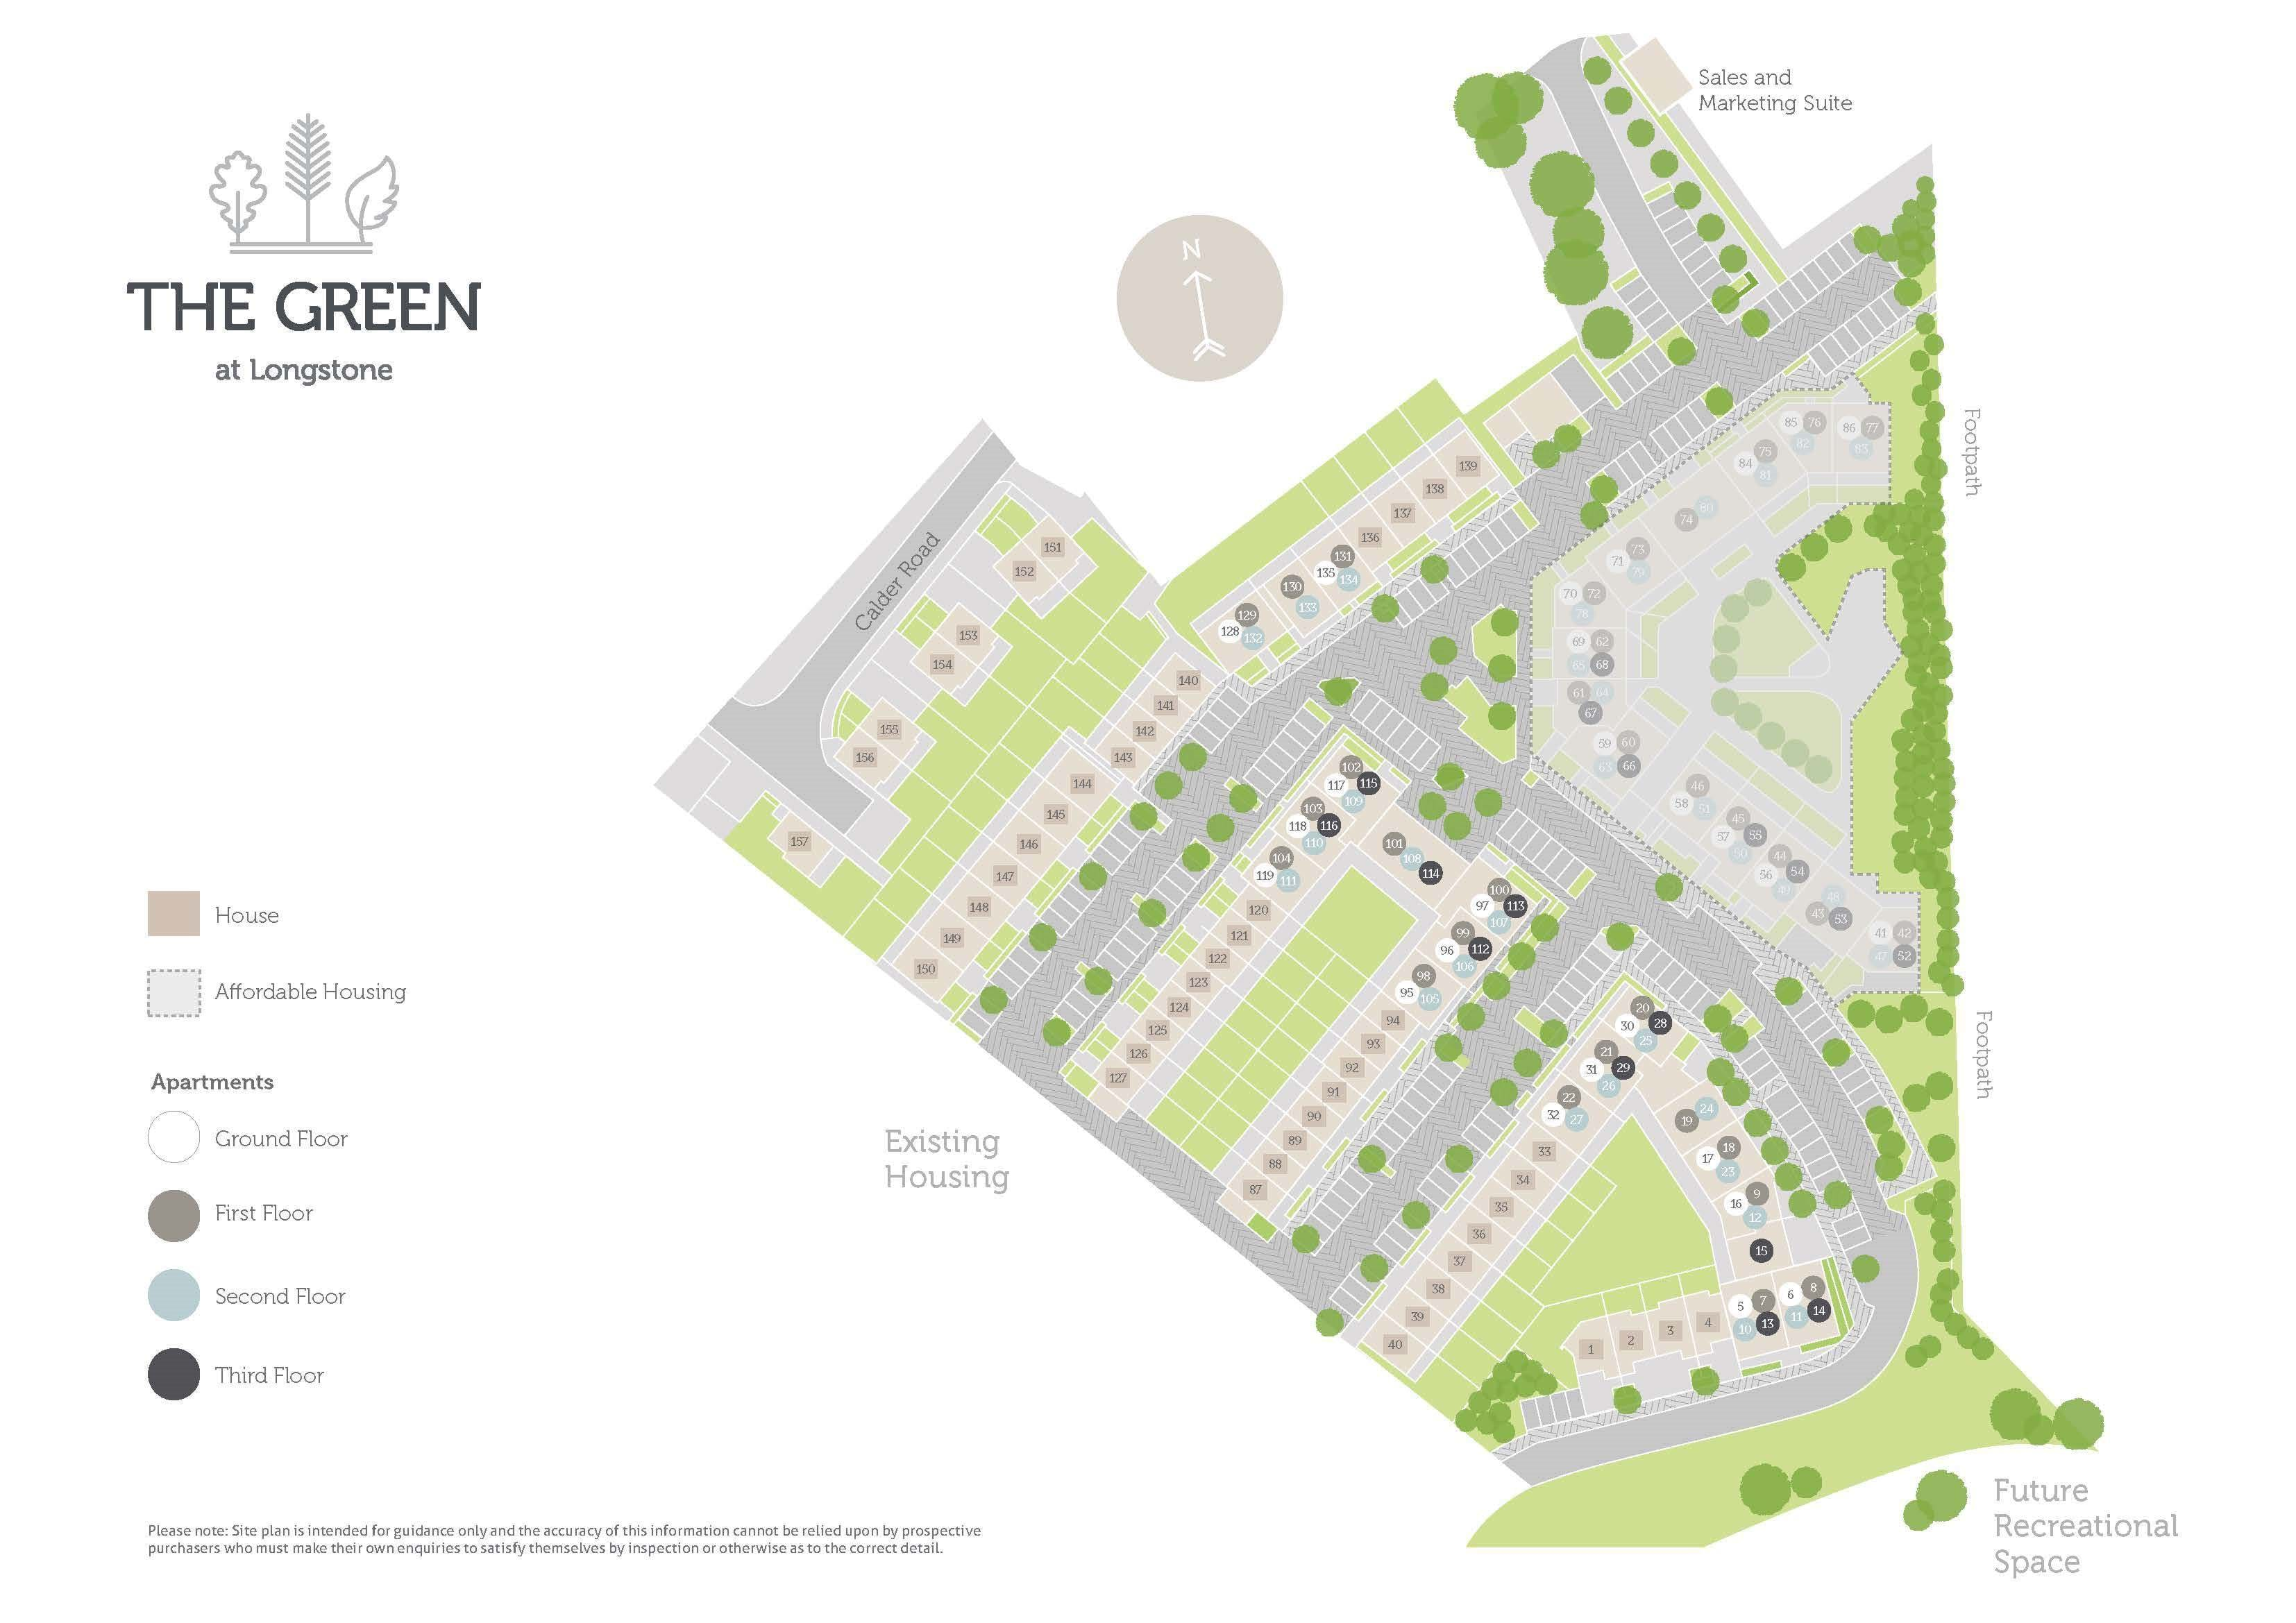 The Green site plan